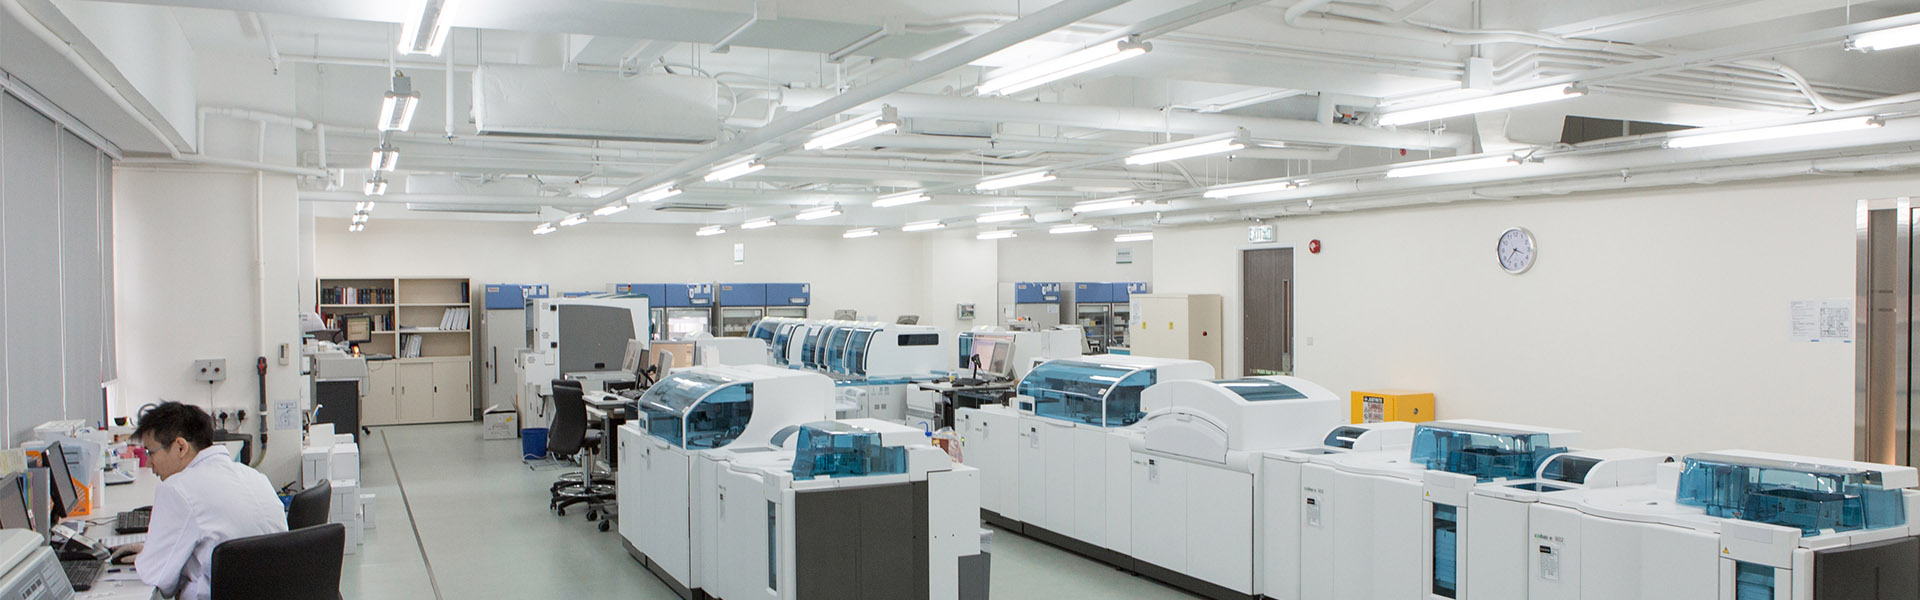 One of the Most Comprehensive Medical Laboratories in Hong Kong